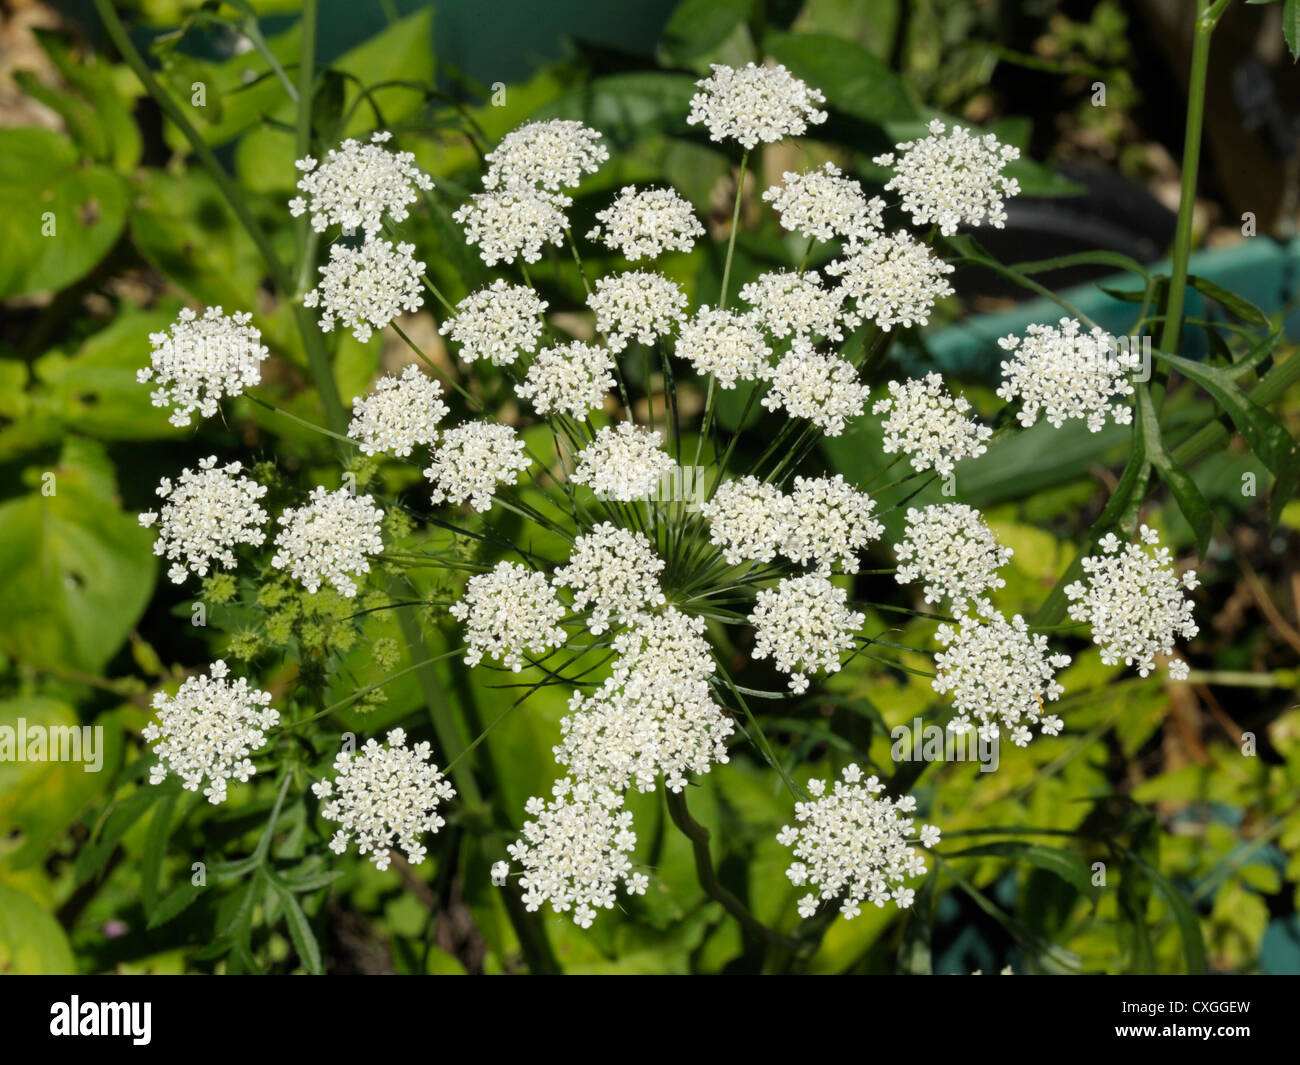 Bullwort, Ammi majus Stock Photo